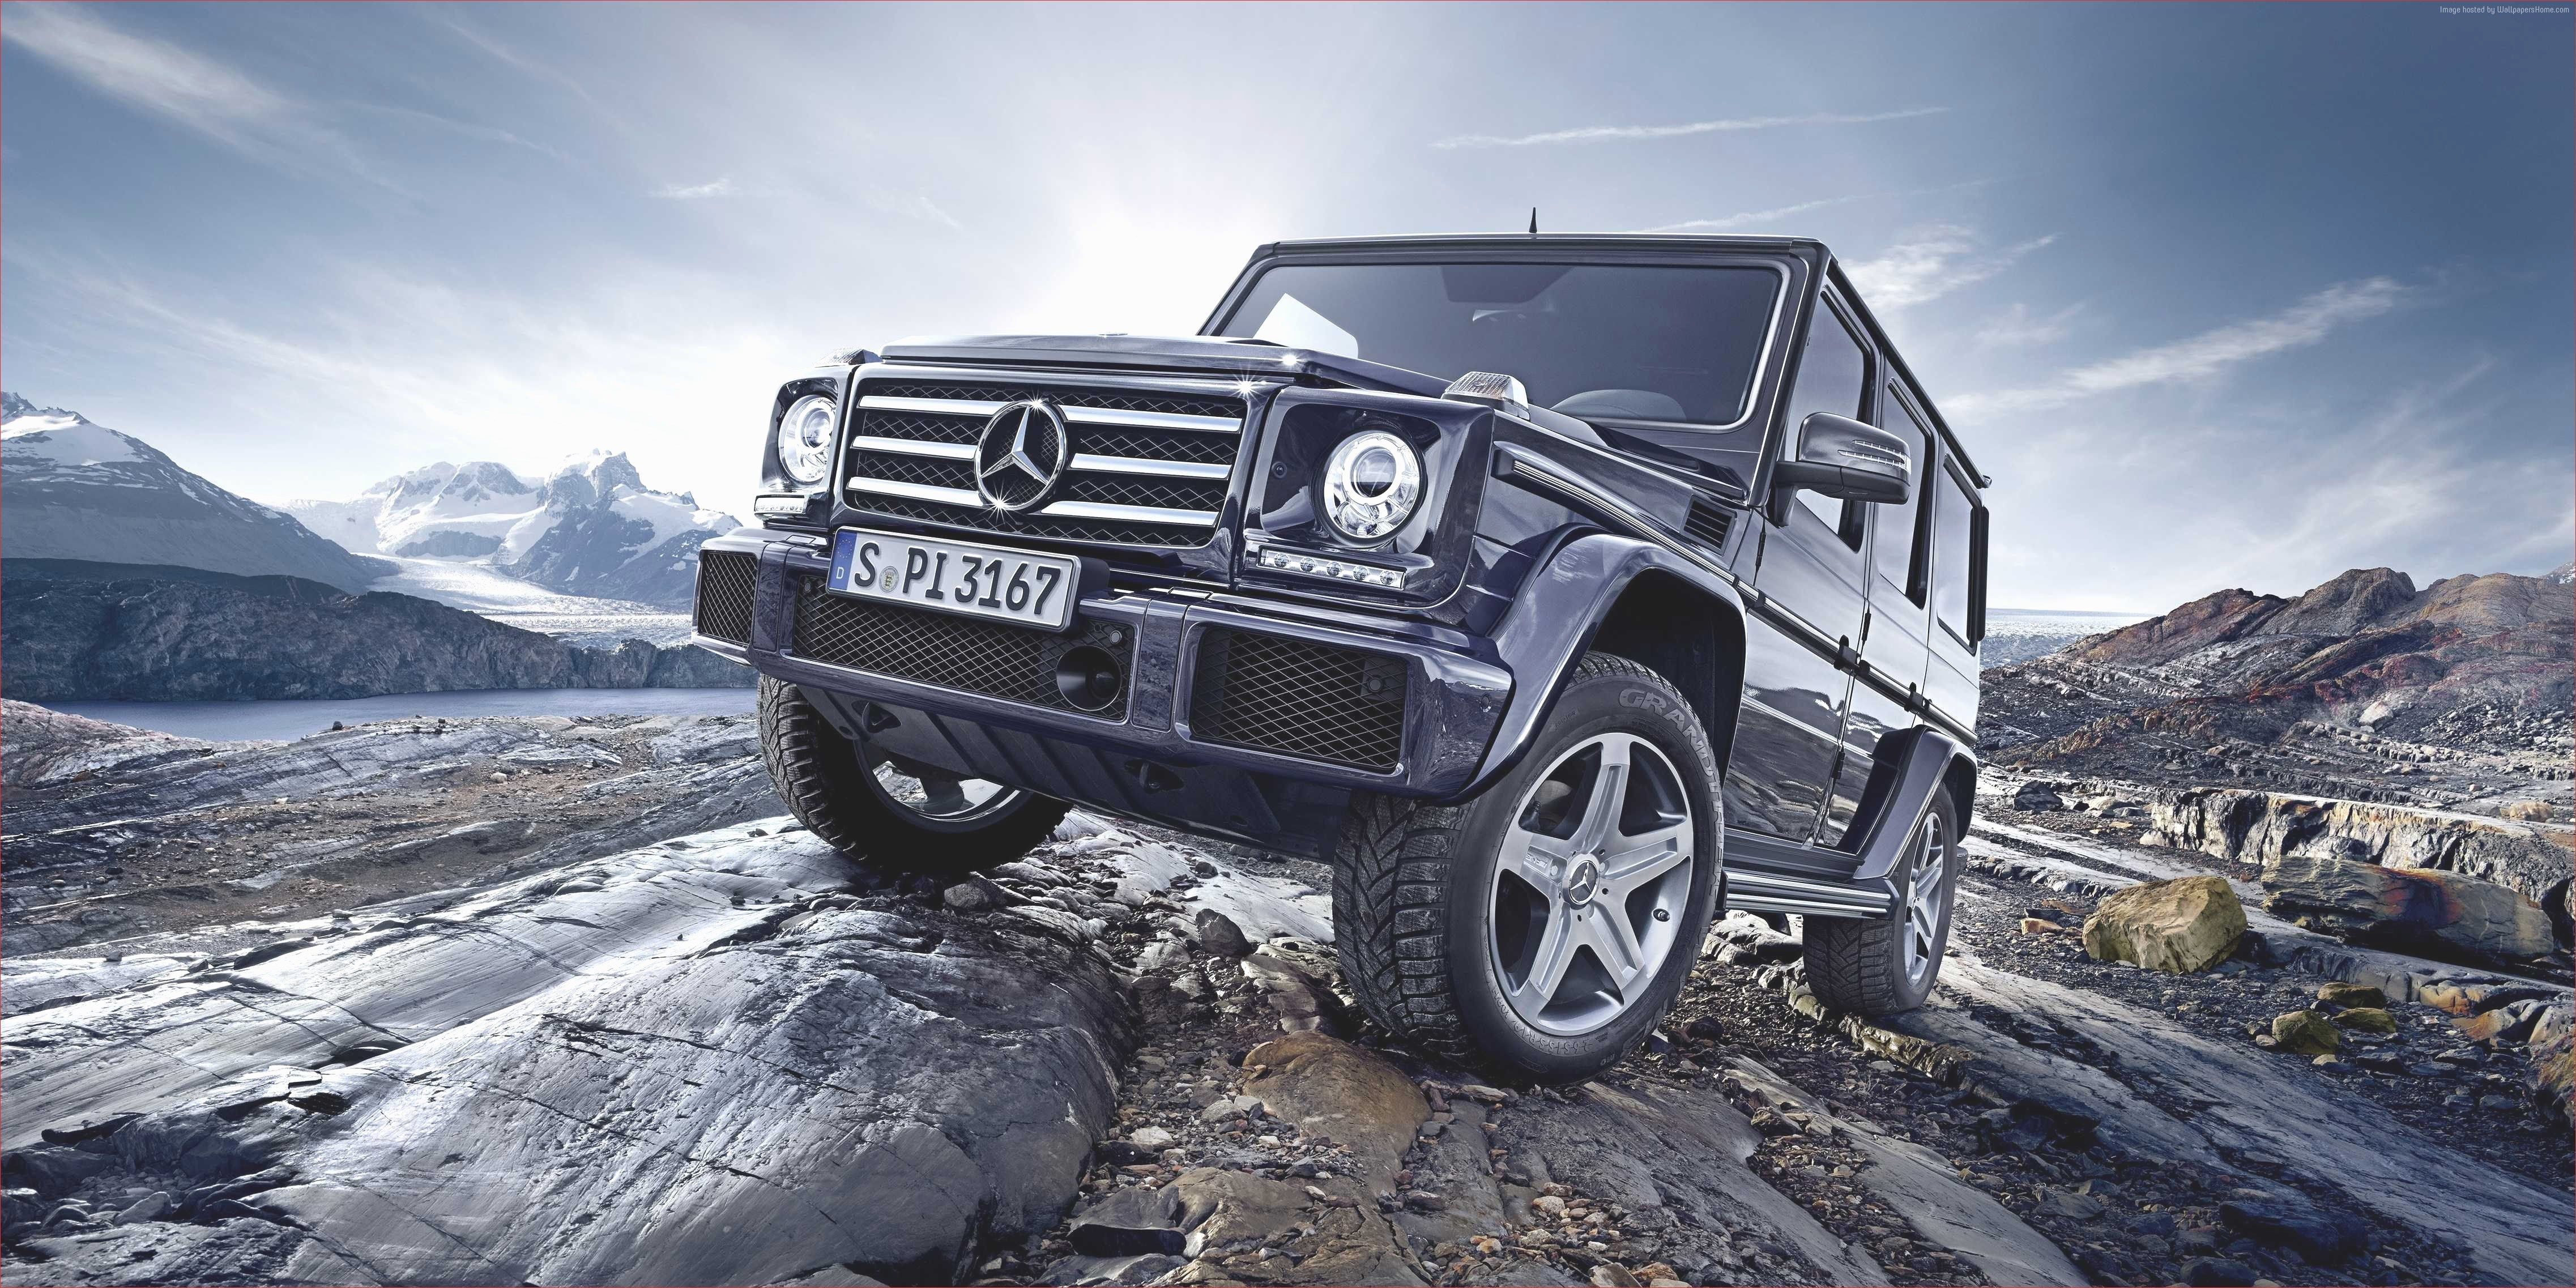 Matte Mercedes G Wagon Wallpapers Top Free Matte Mercedes G Wagon Backgrounds Wallpaperaccess